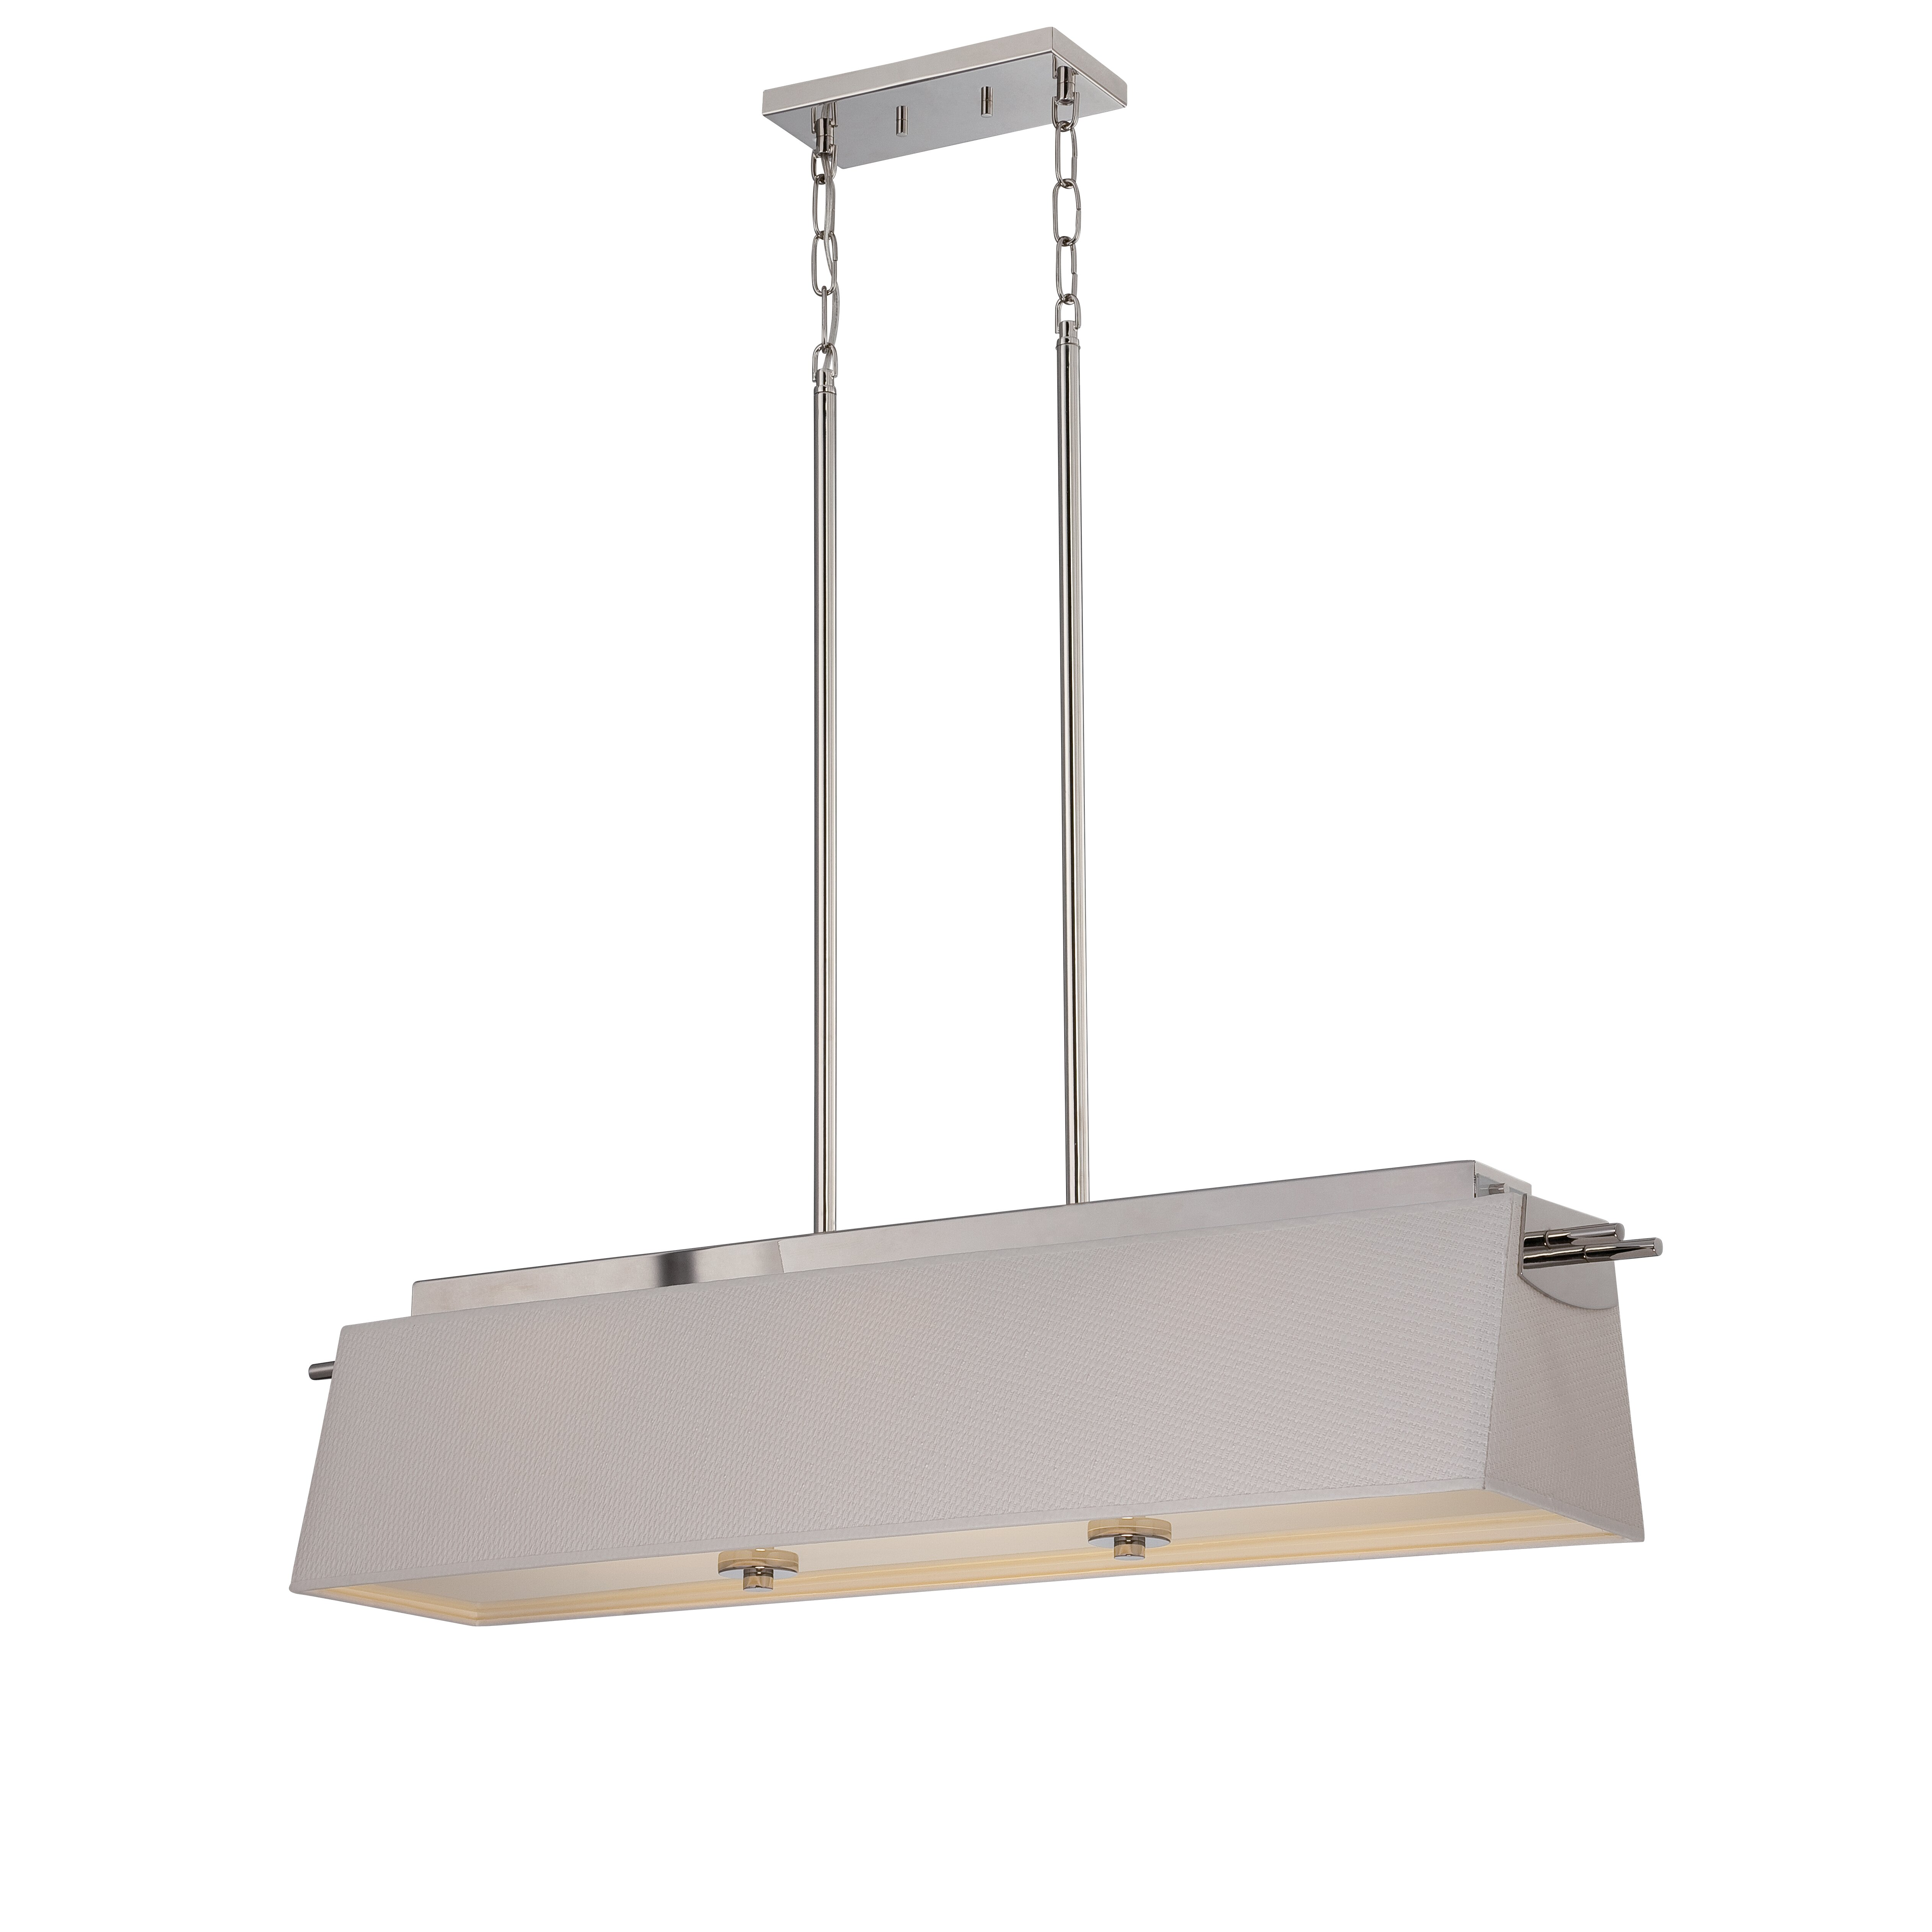 Claire 3 light kitchen island pendant by nuvo lighting